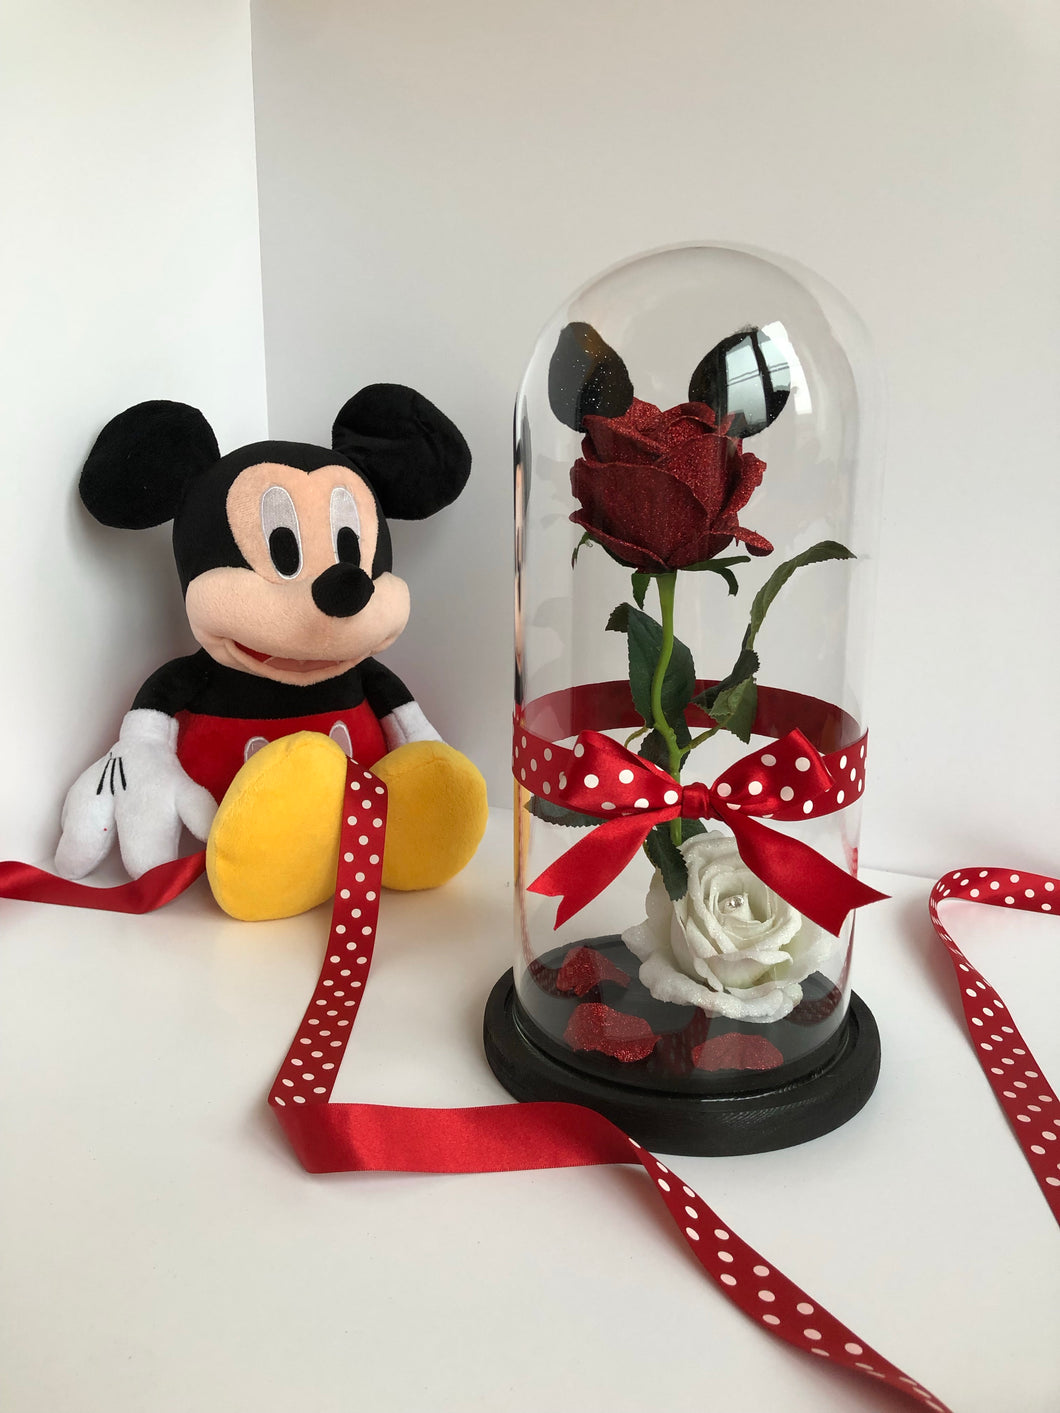 Mickey Mouse large forever dome